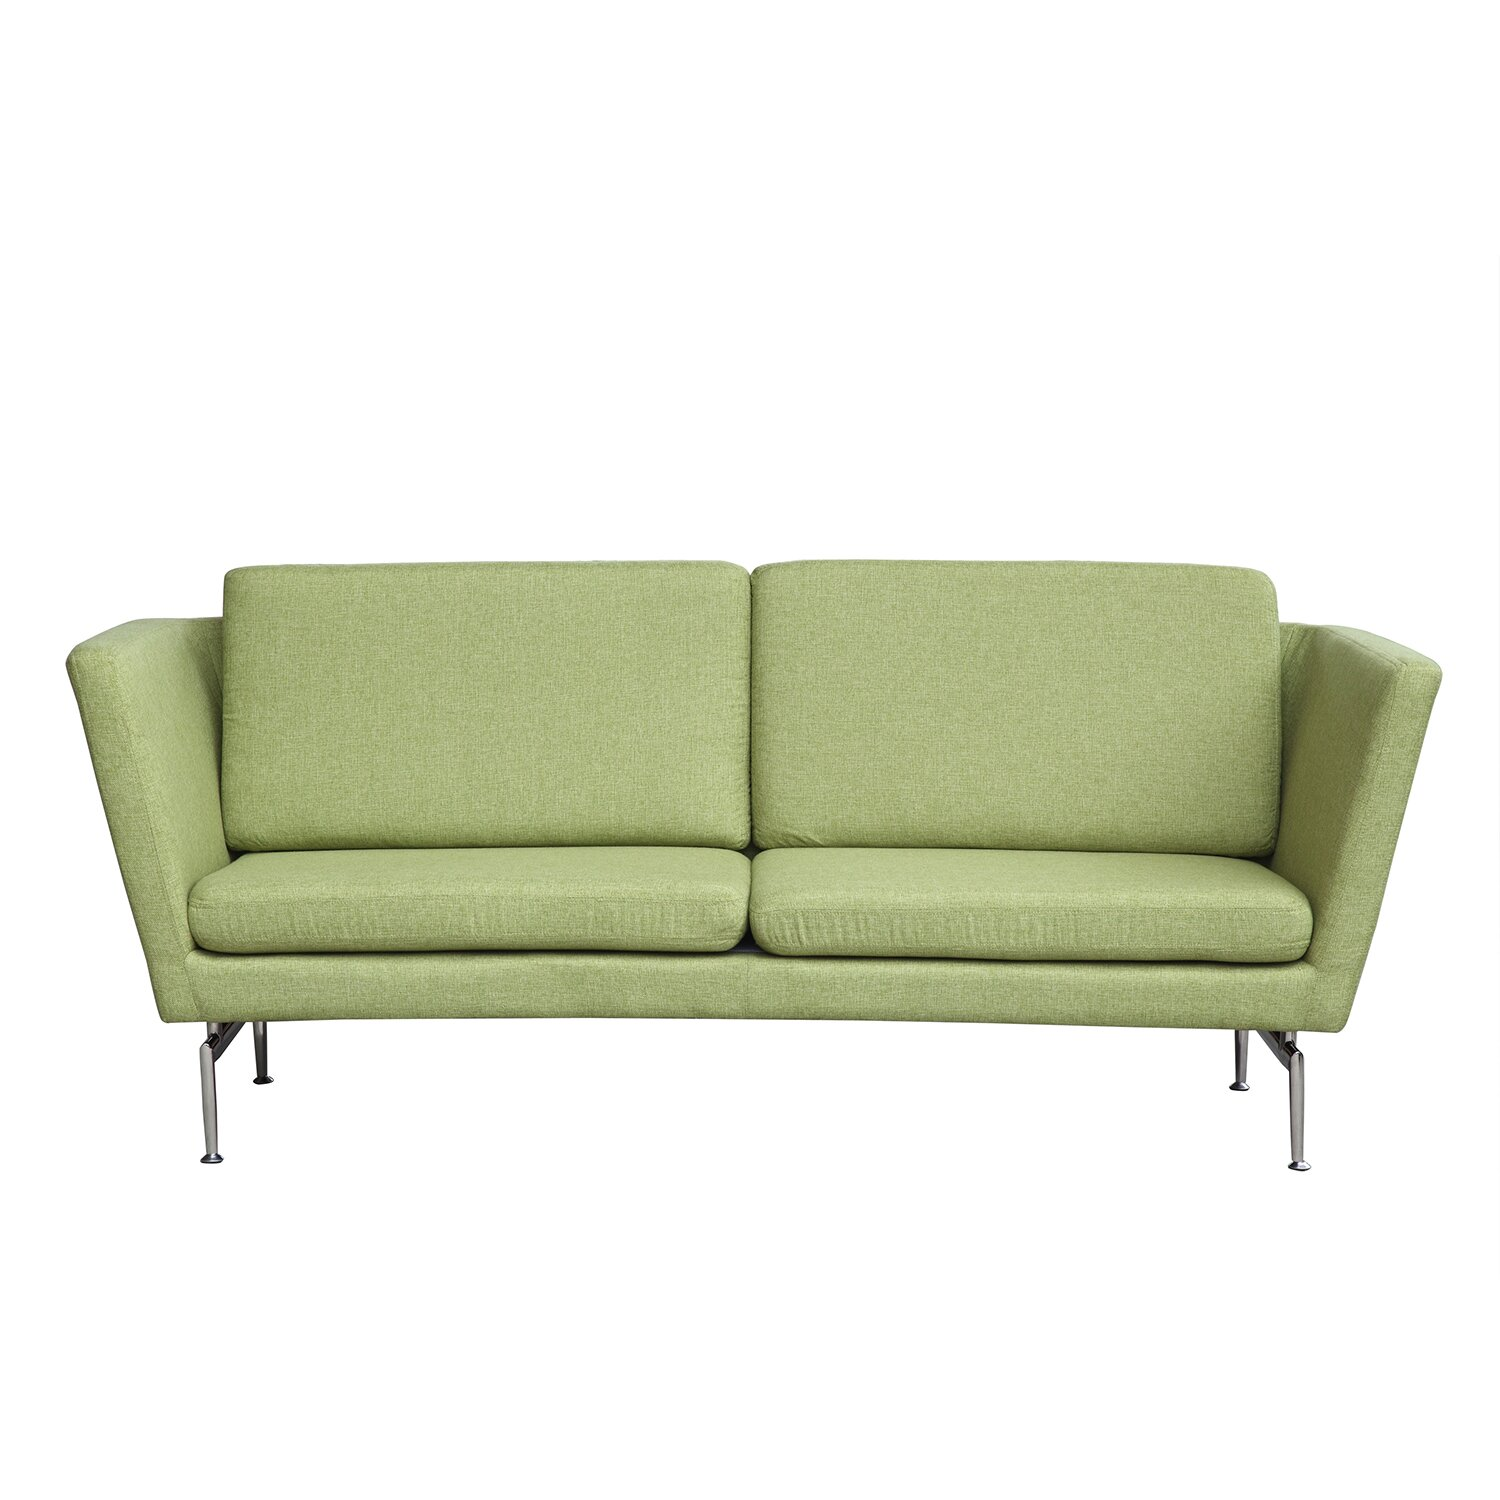 Kardiel vorgen mid century modern loft sofa wayfair for Modern love seats